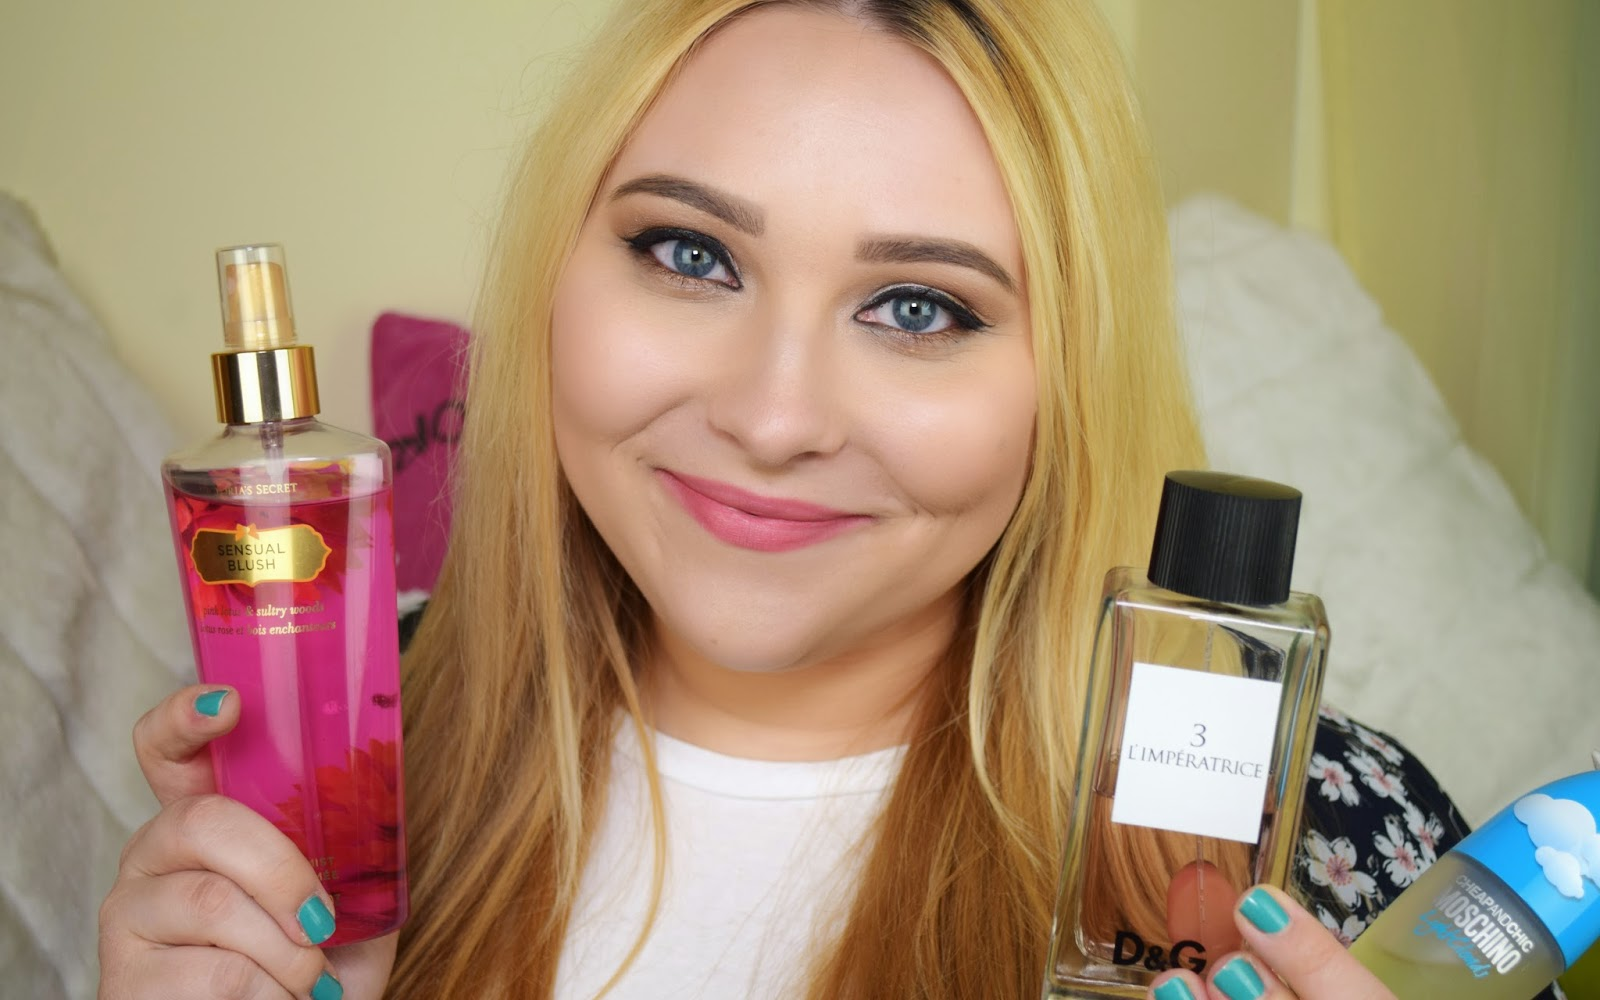 My Top 5 Spring Perfumes/Scents